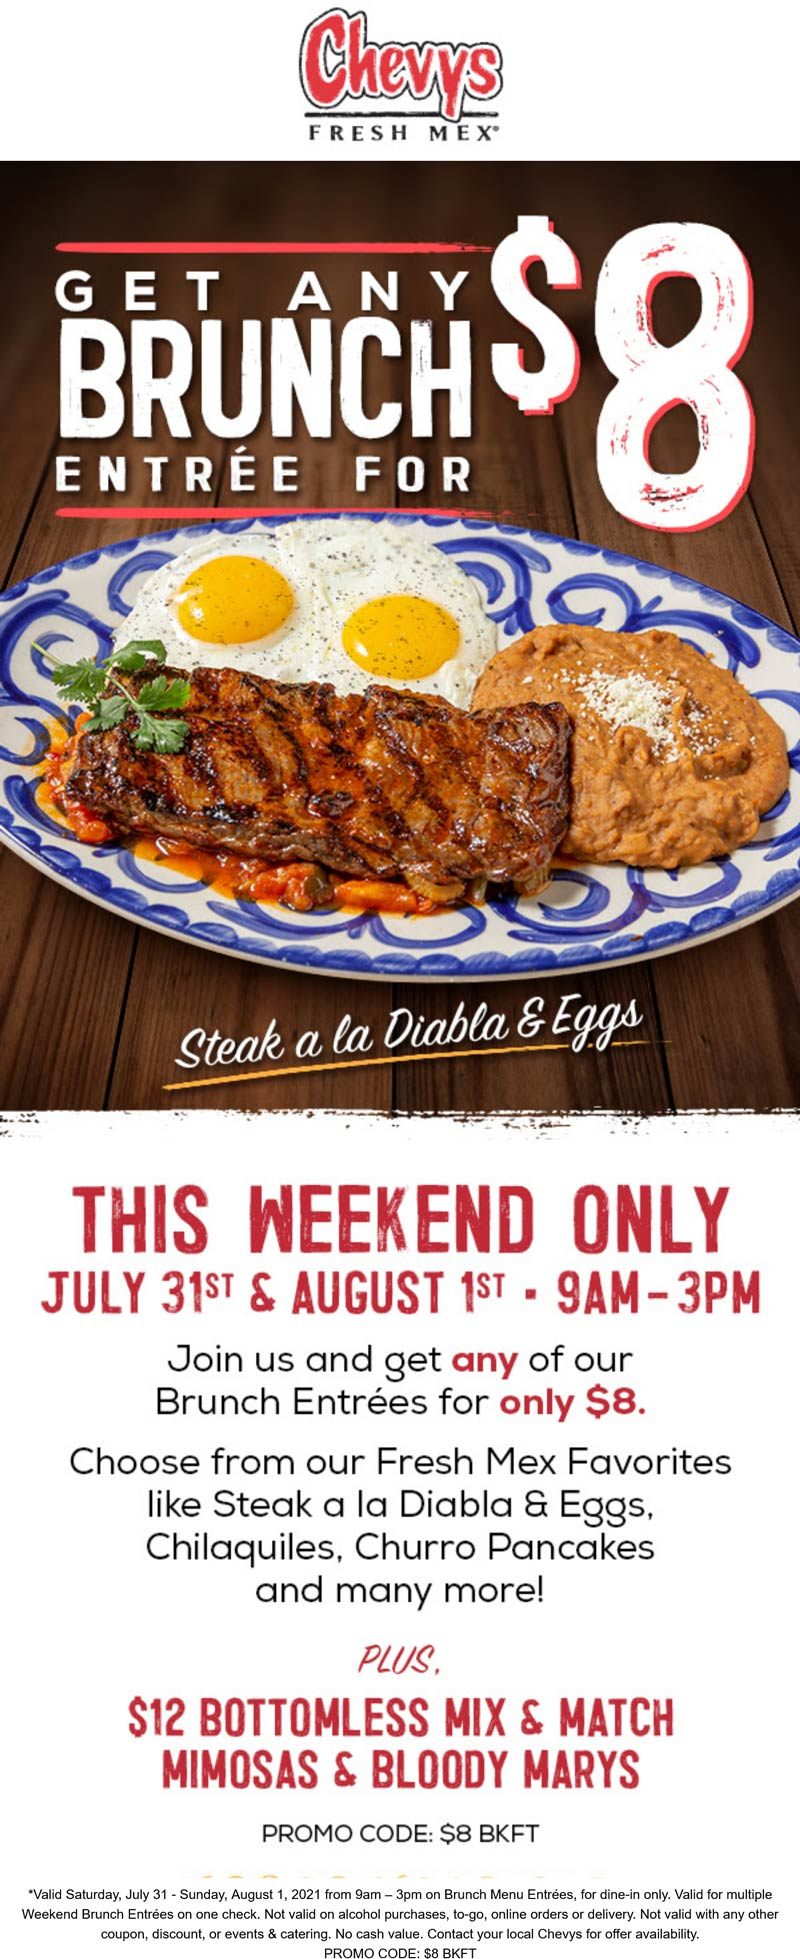 Chevys restaurants Coupon  $8 brunch entree at Chevys Fresh Mex #chevys